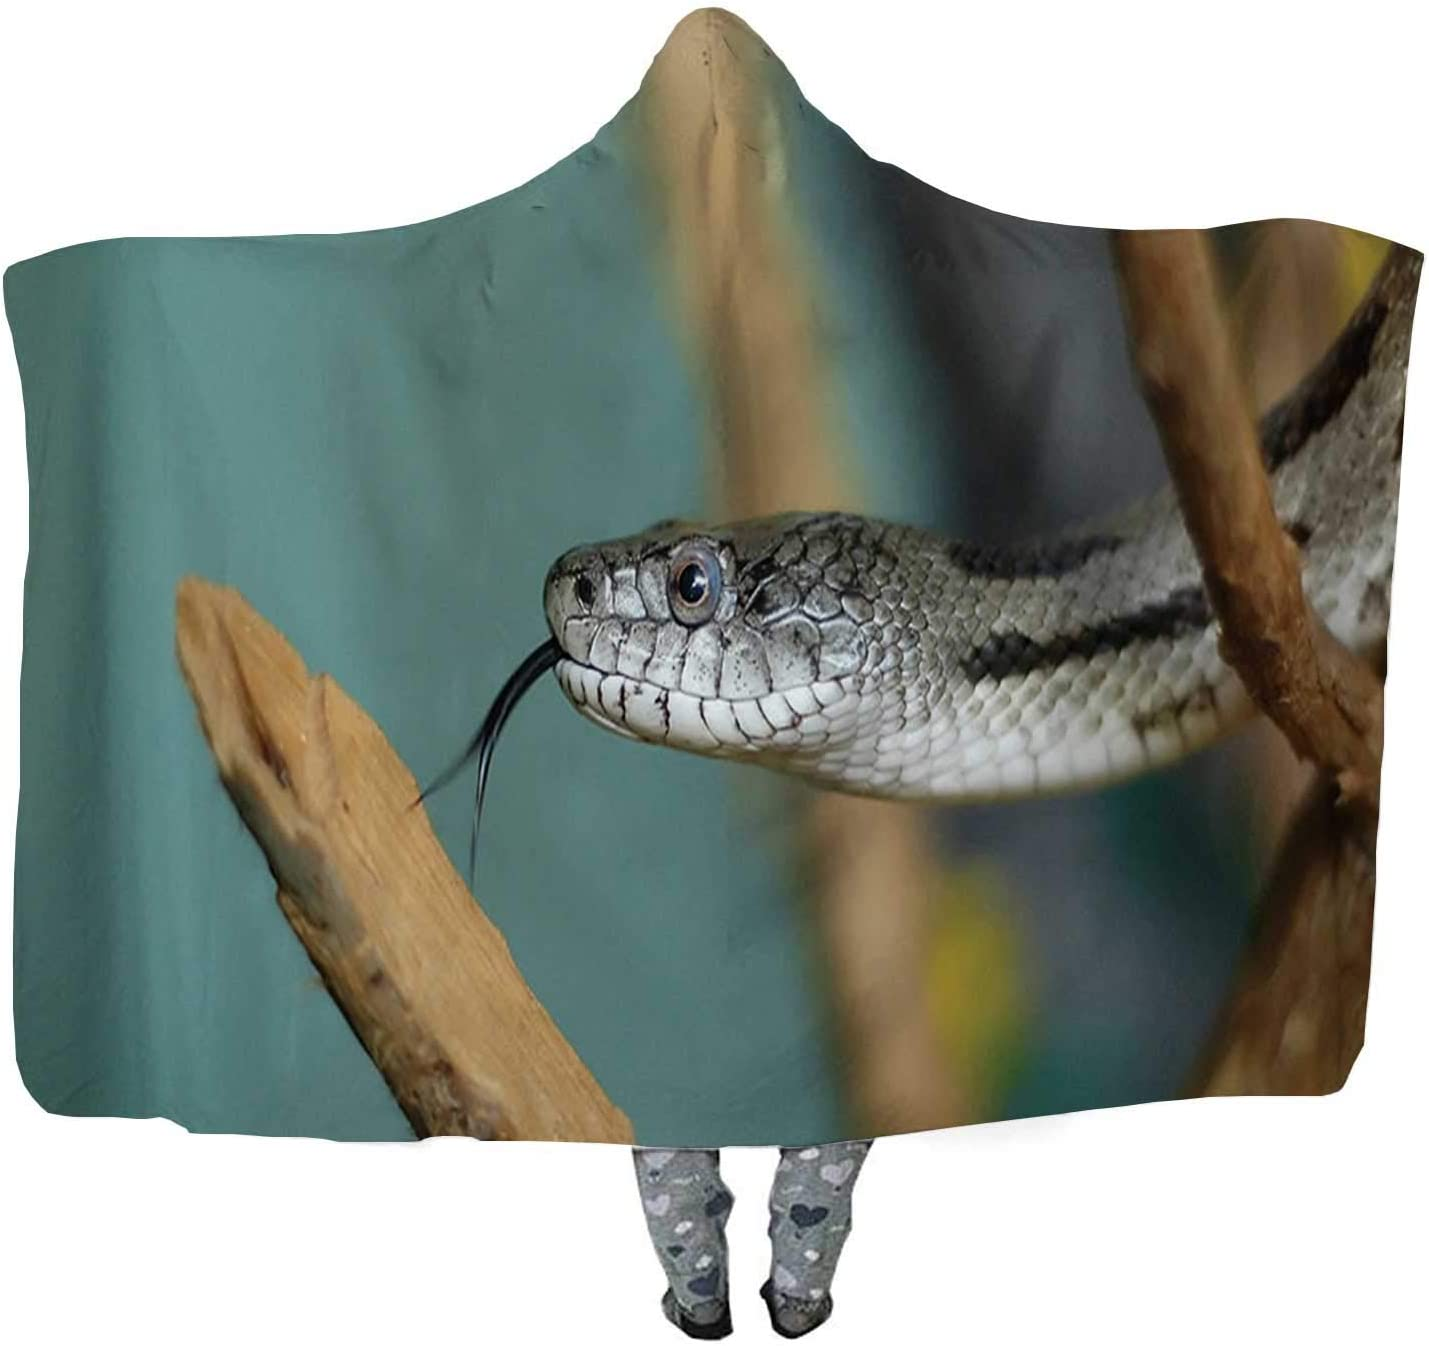 CUDEVS Florida Pine Snake Flicking its Tongue Wearable Blanket,Microfiber Fleece Soft Warm Winter Novelty Wearable Blanket,085346,60''W x 50''H